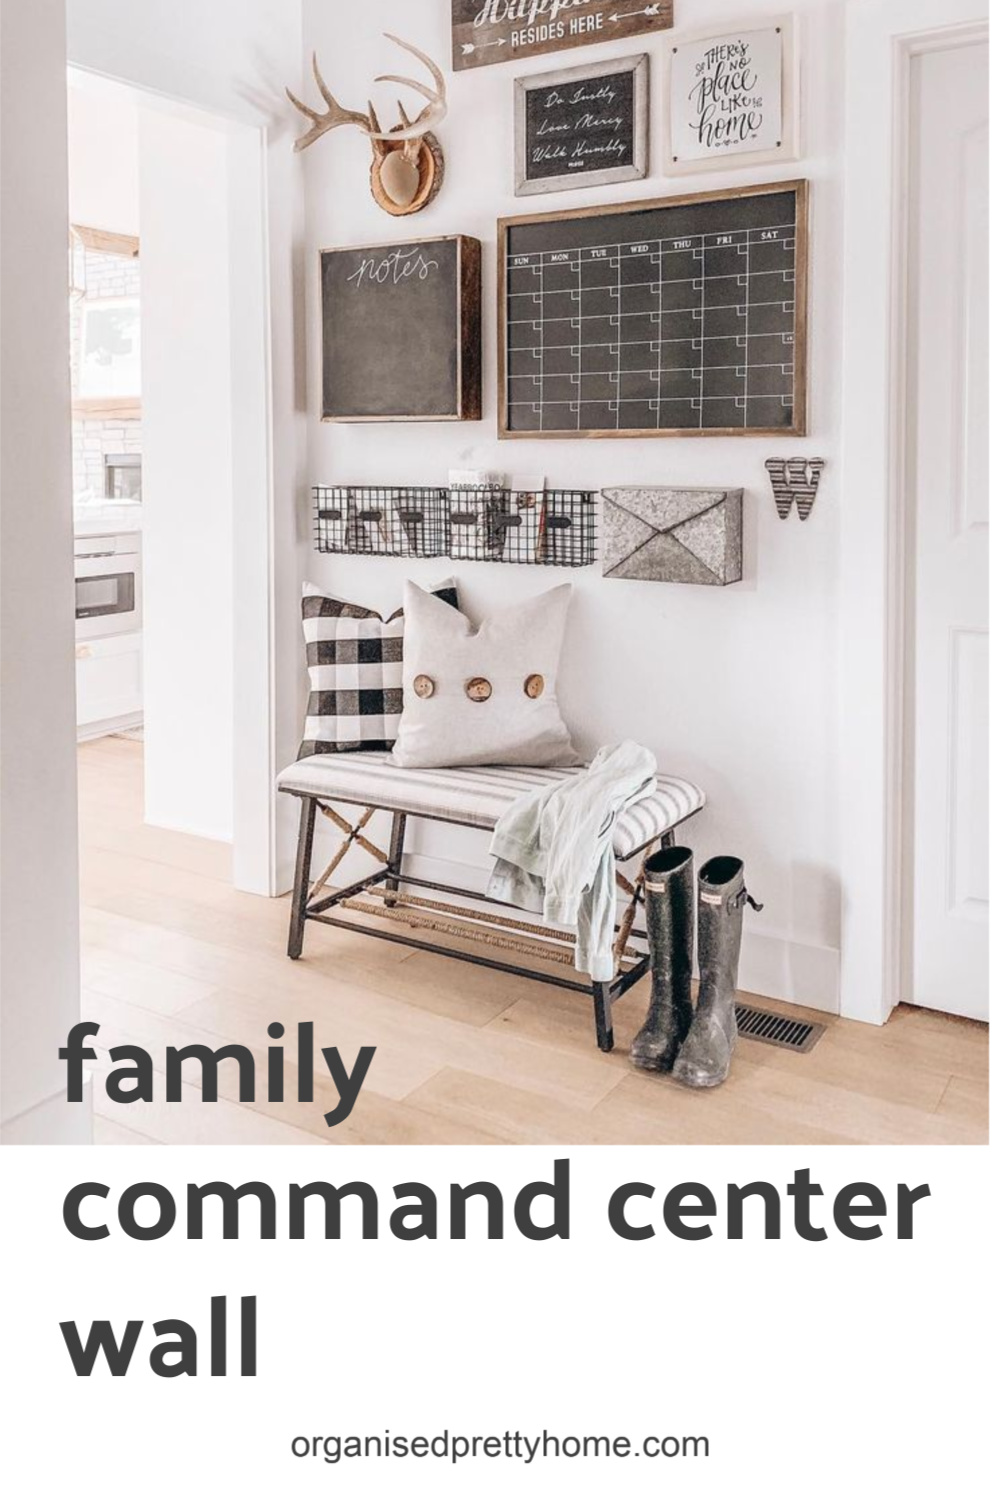 Create your own DIY family command center with these simple steps.